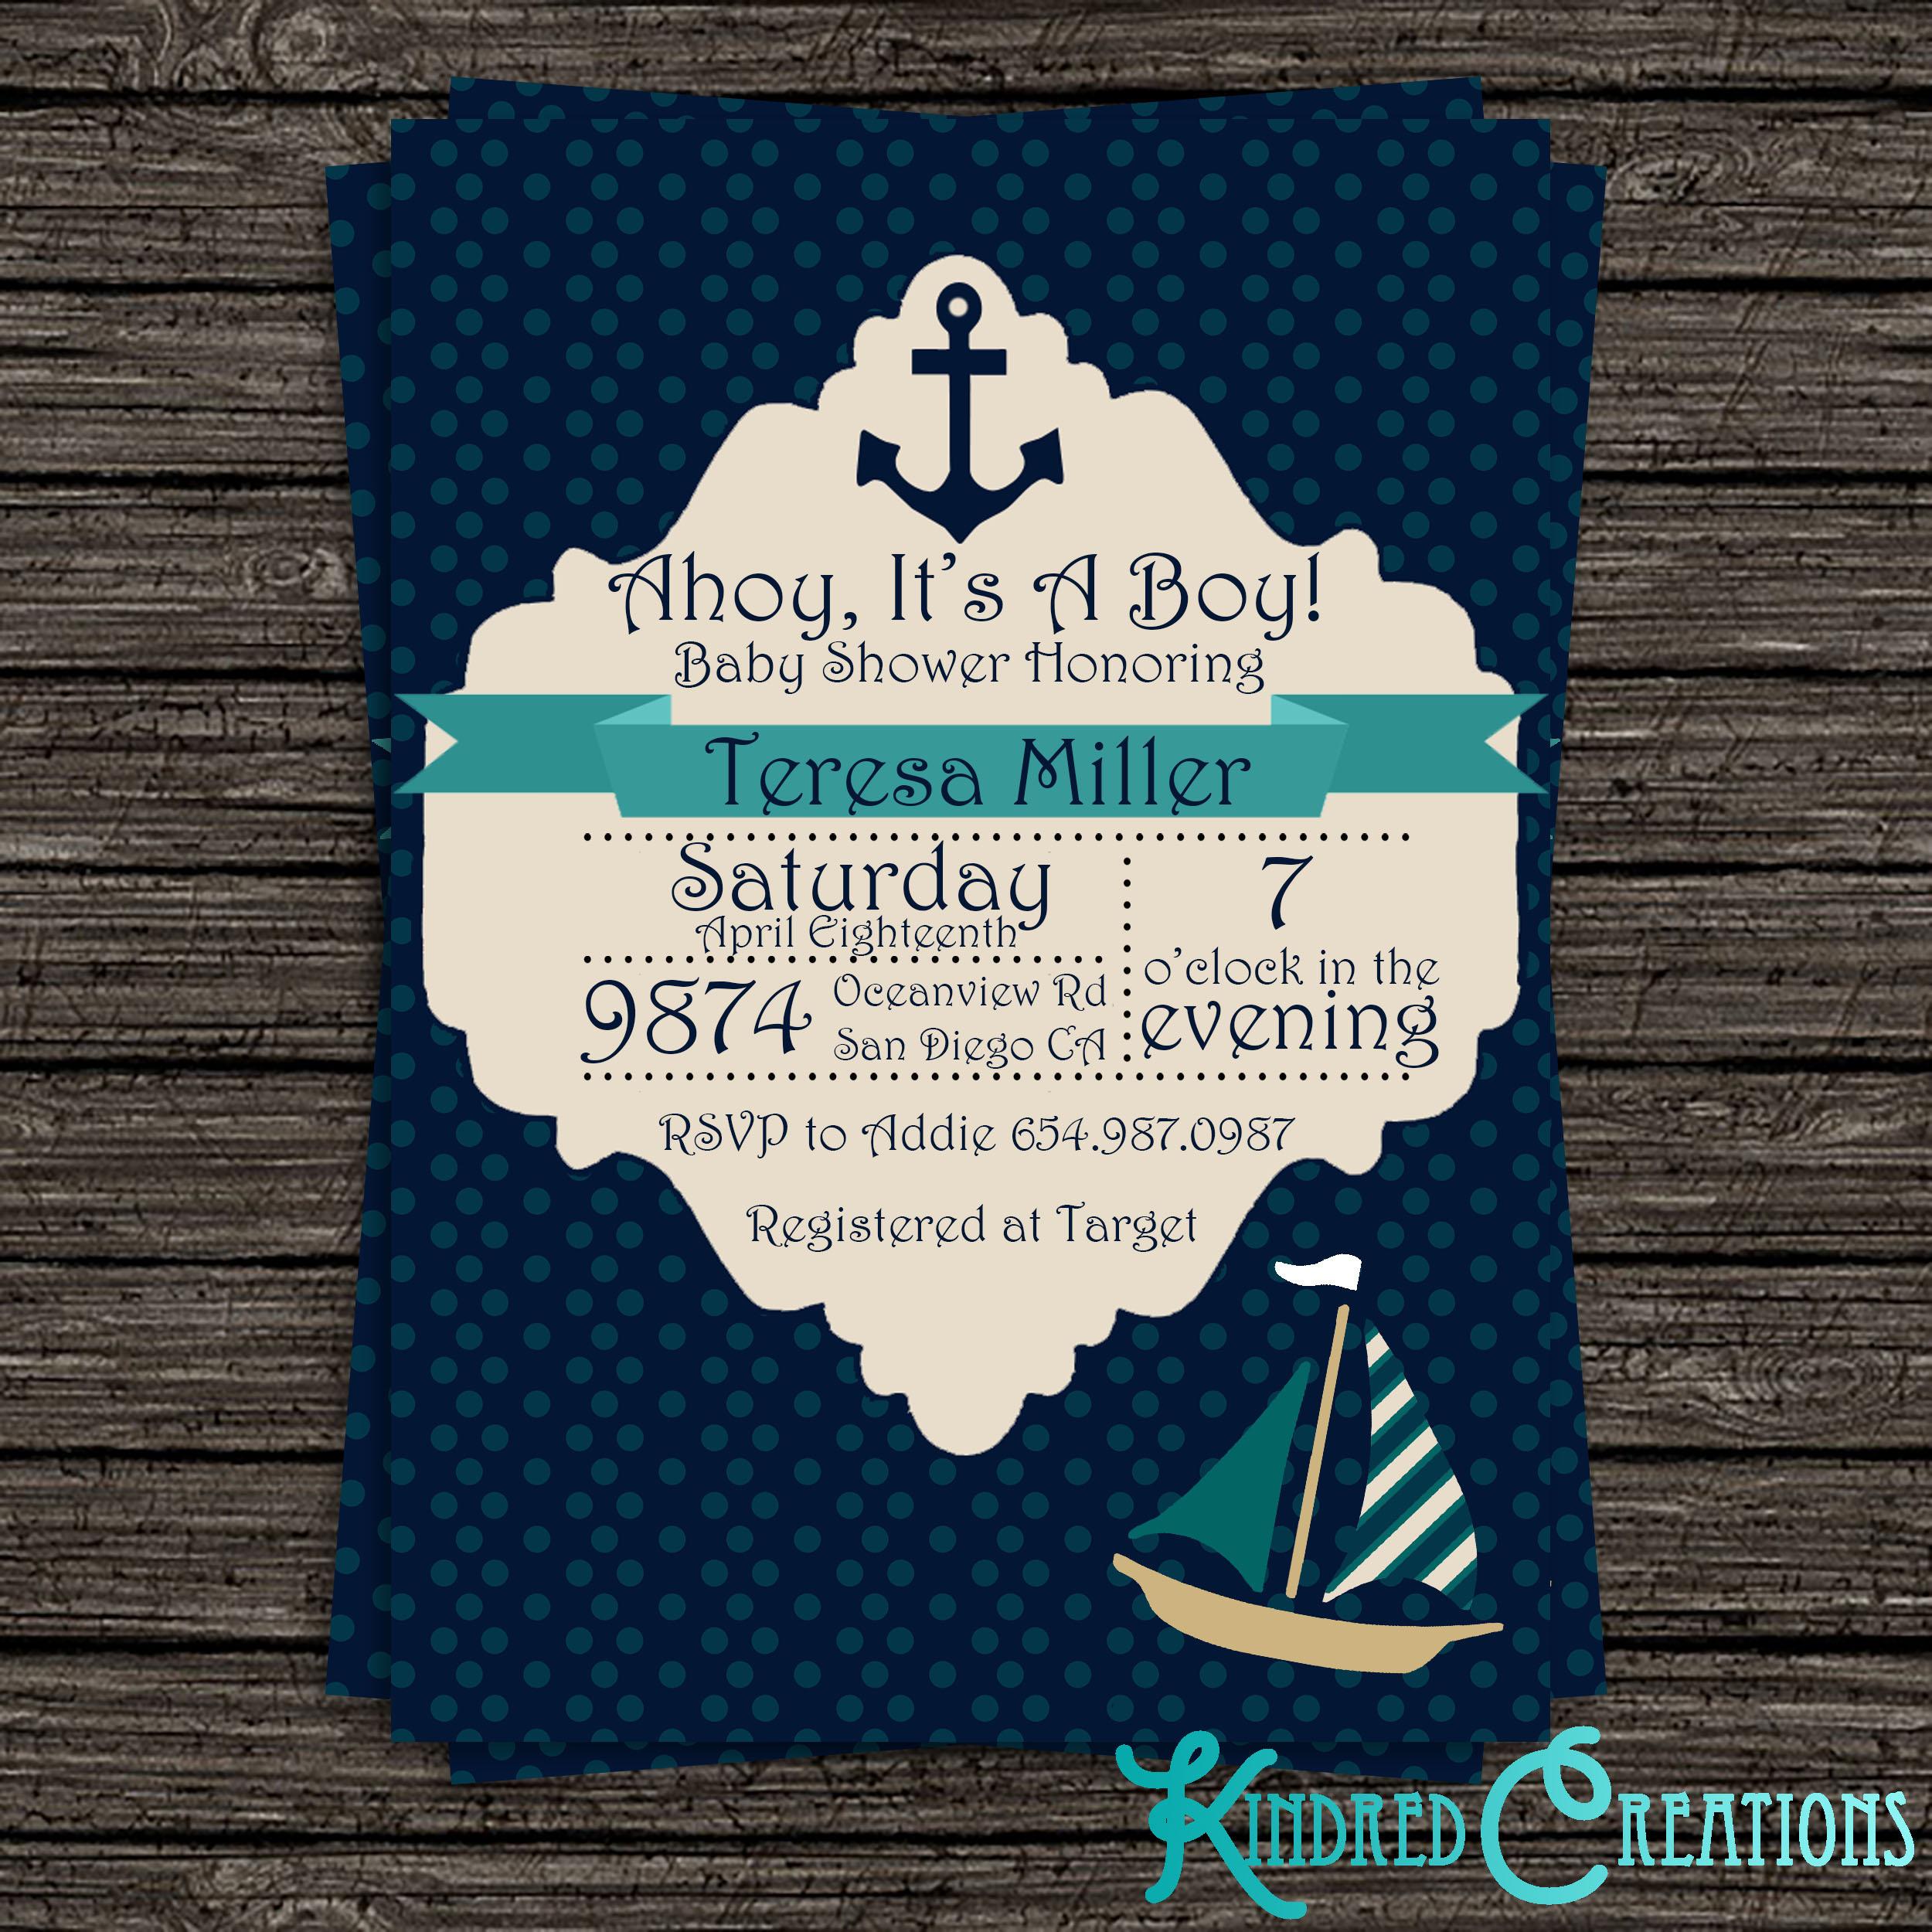 Full Size of Baby Shower:baby Boy Shower Ideas Free Printable Baby Shower Games Free Baby Shower Ideas Unique Baby Shower Decorations Elegant Baby Shower Oriental Trading Baby Shower Baby Shower Favors Ideas For Baby Shower Centerpieces